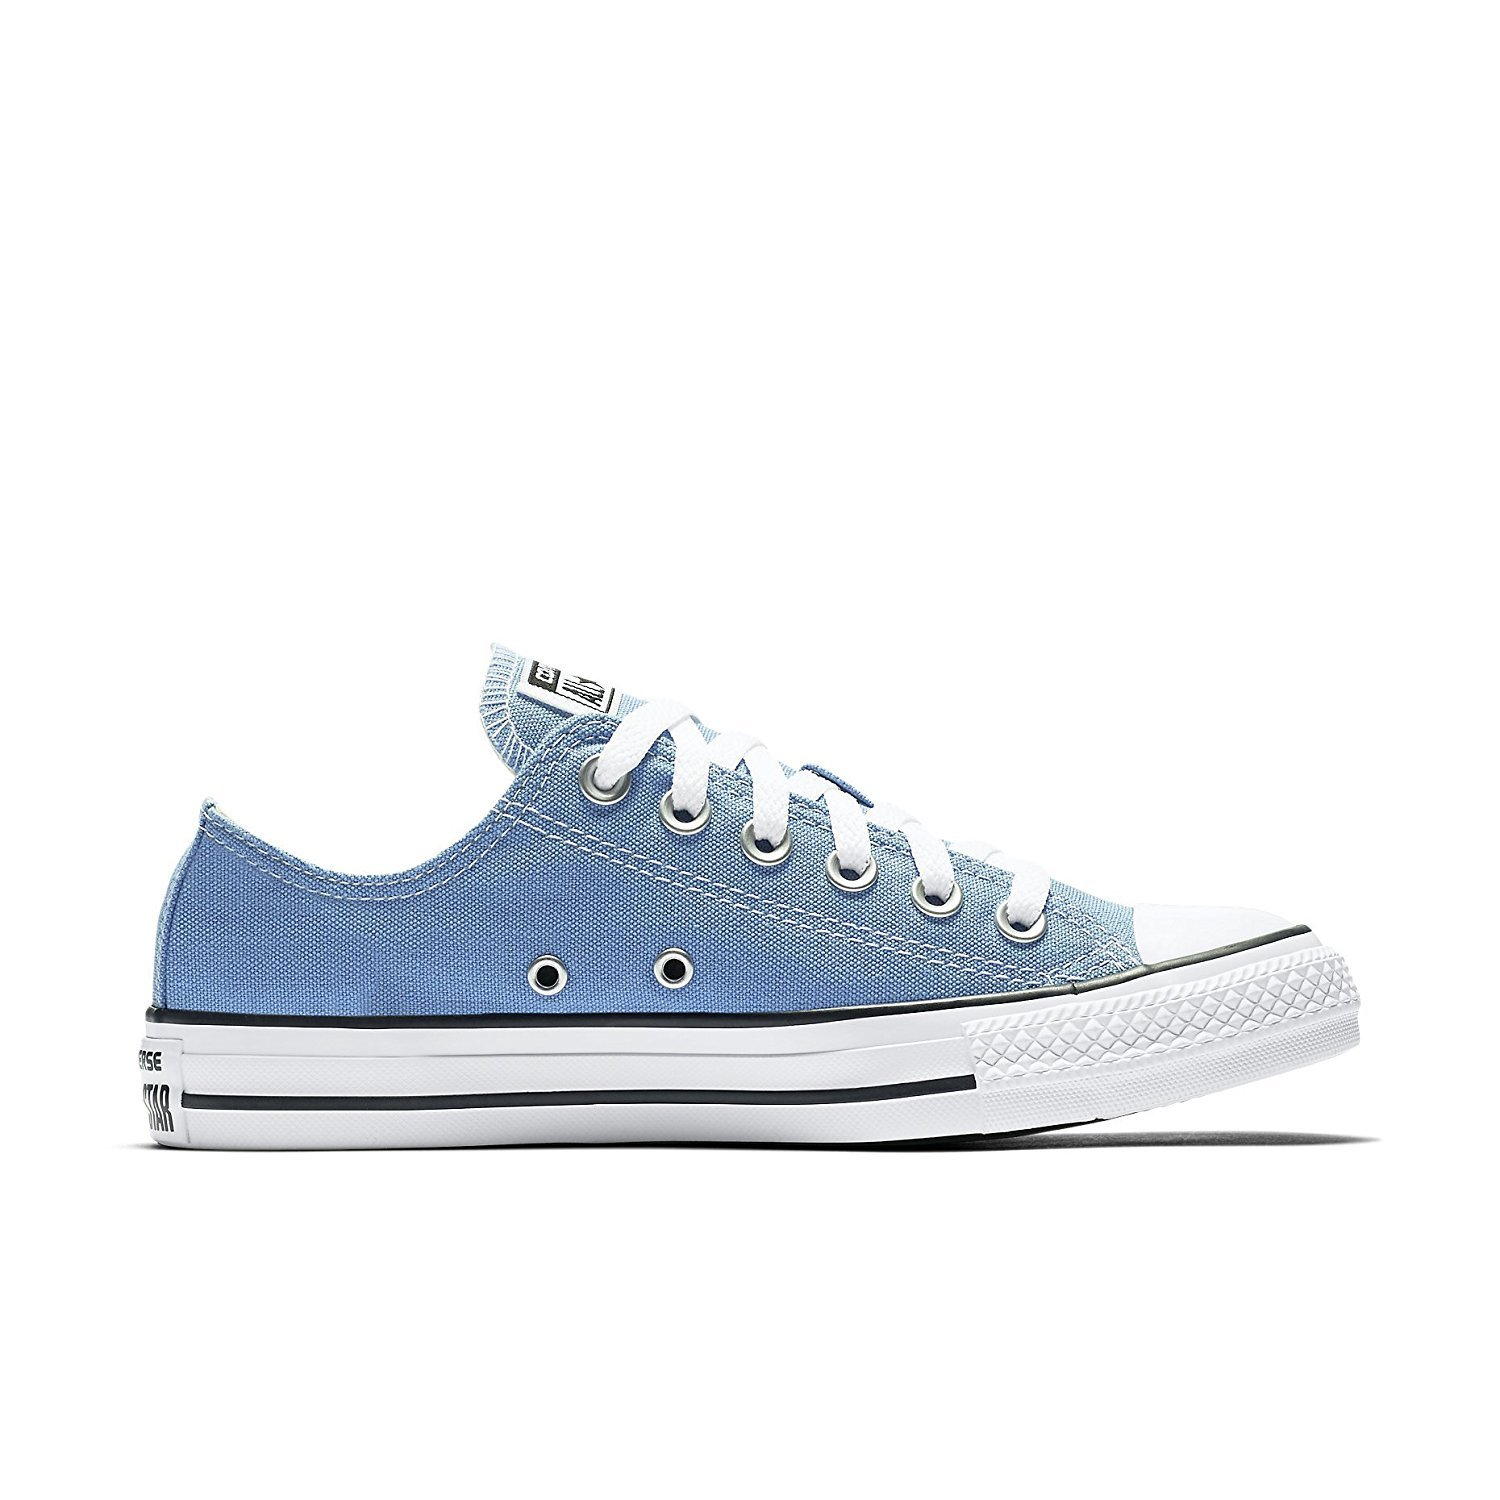 converse unisex chuck taylor all star low top pioneer blue